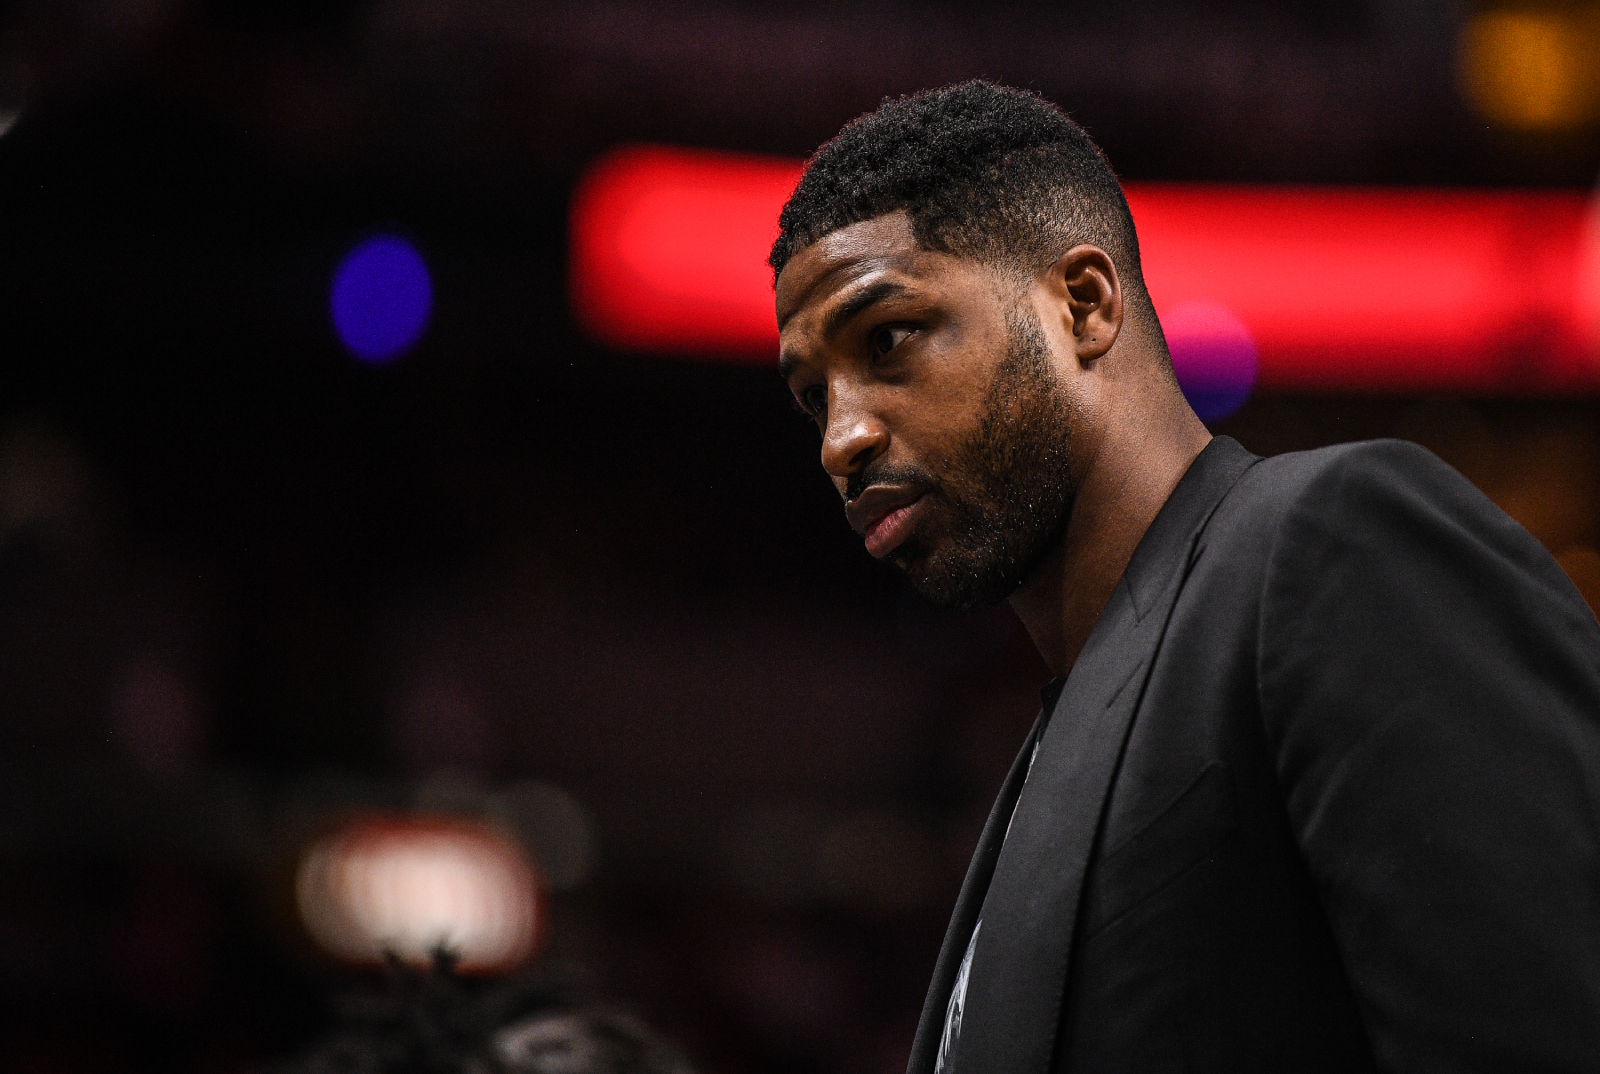 Tristan Thompson has played on the Cavaliers his entire career. Could he be on the move this offseason, though, or will he stay in Cleveland?